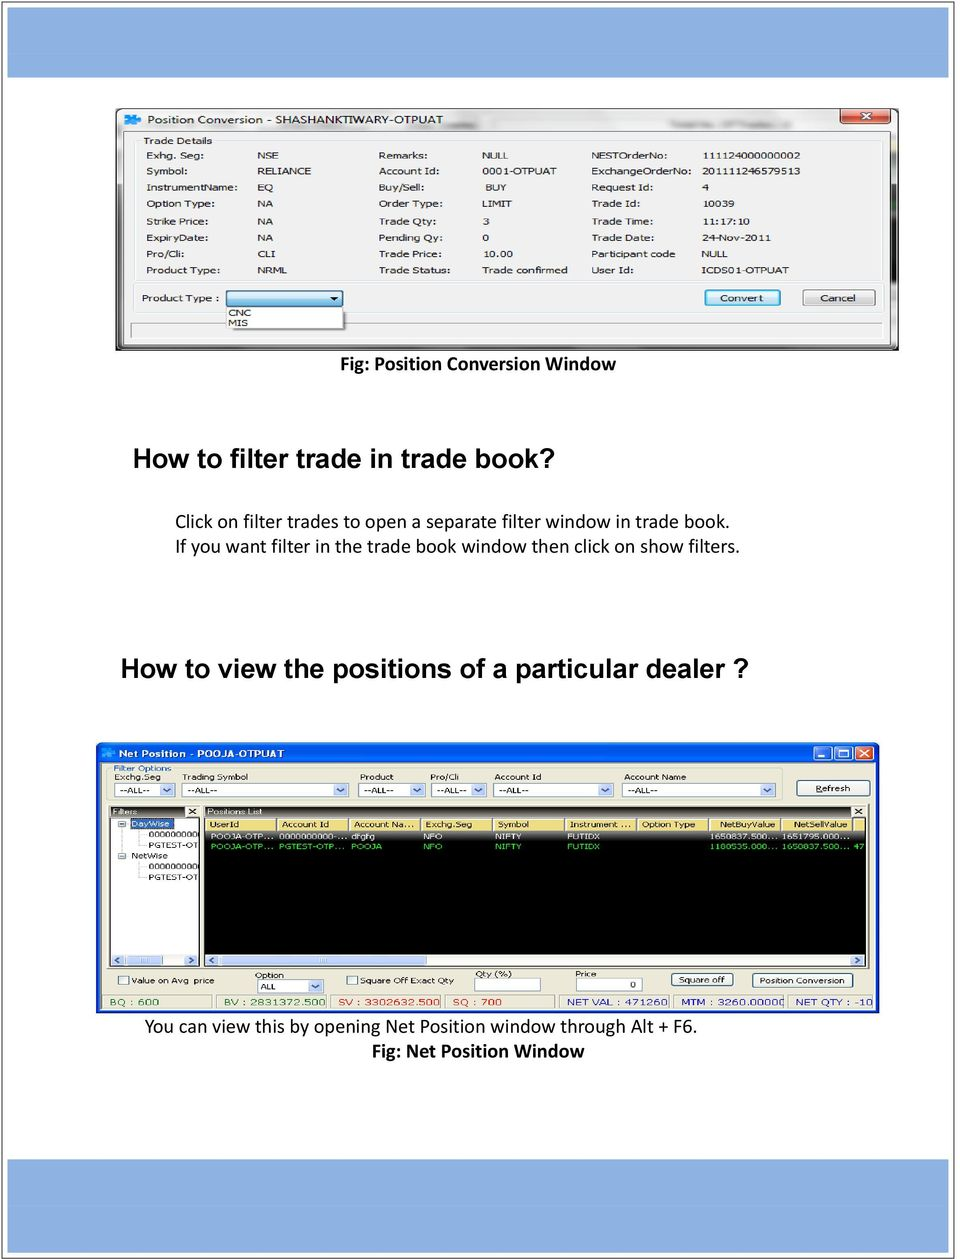 If you want filter in the trade book window then click on show filters.